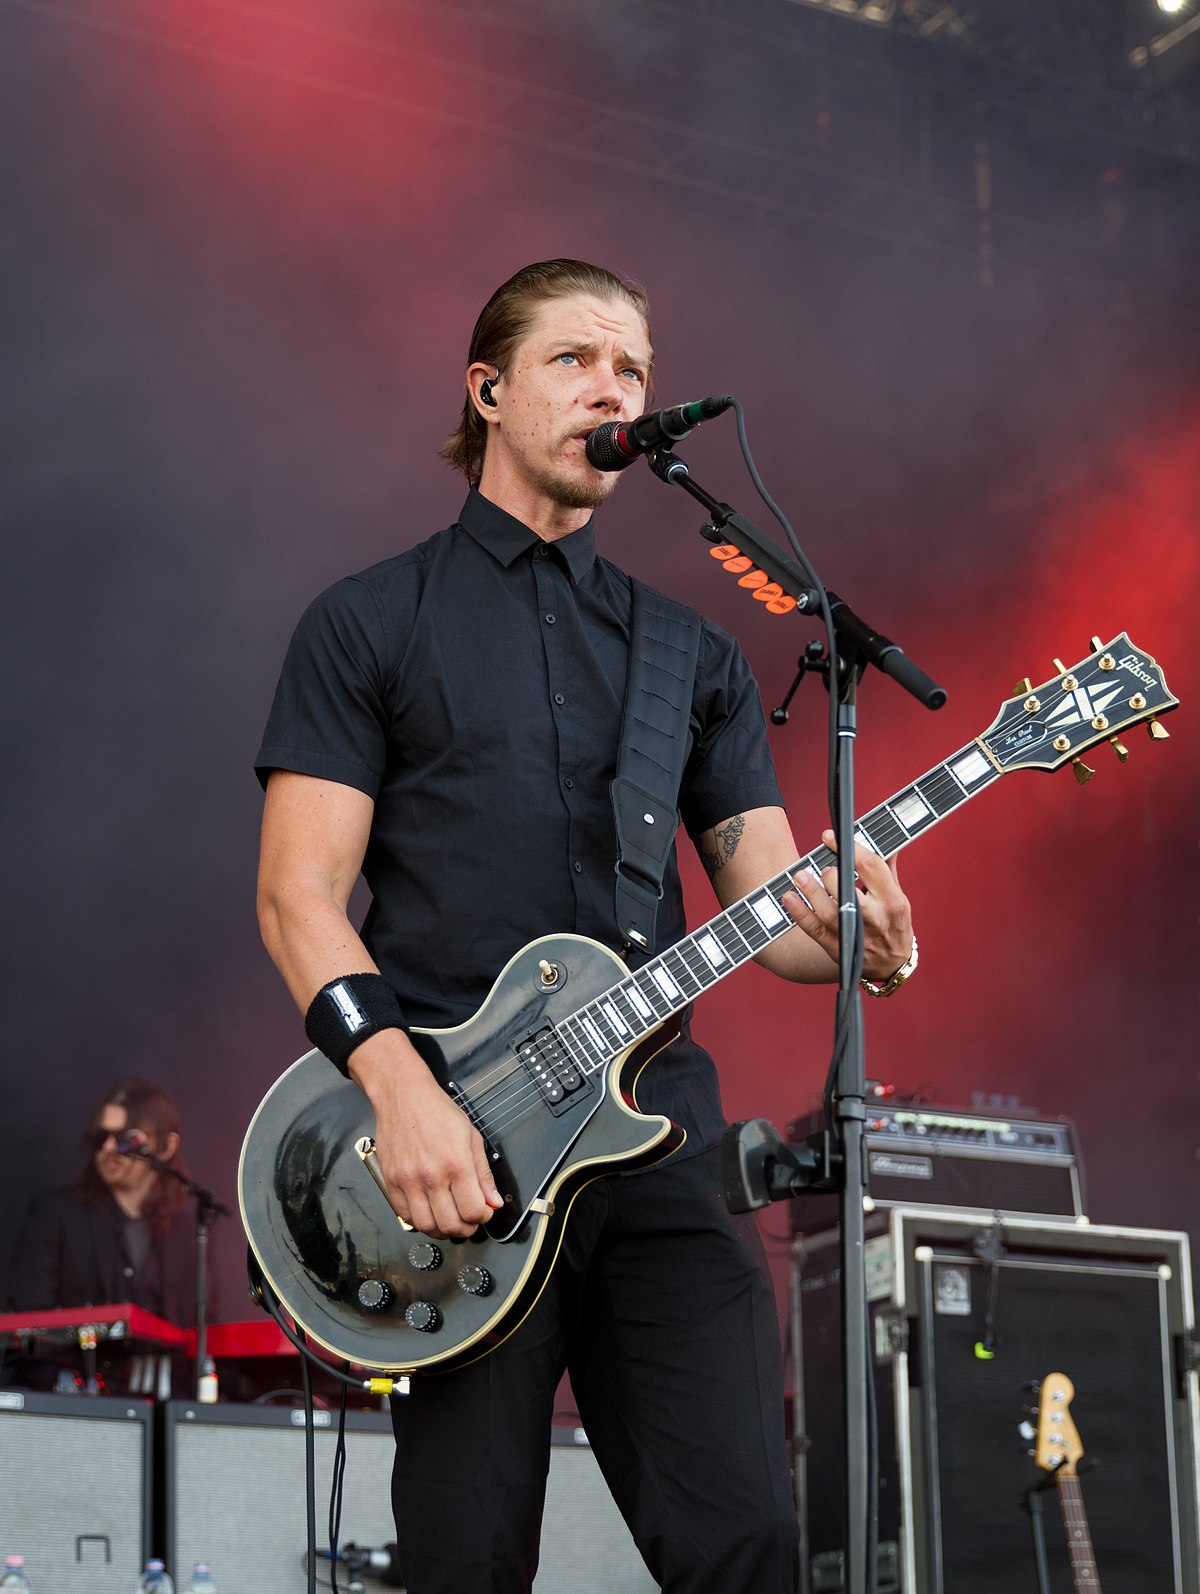 Paul Banks American Musician Wikipedia